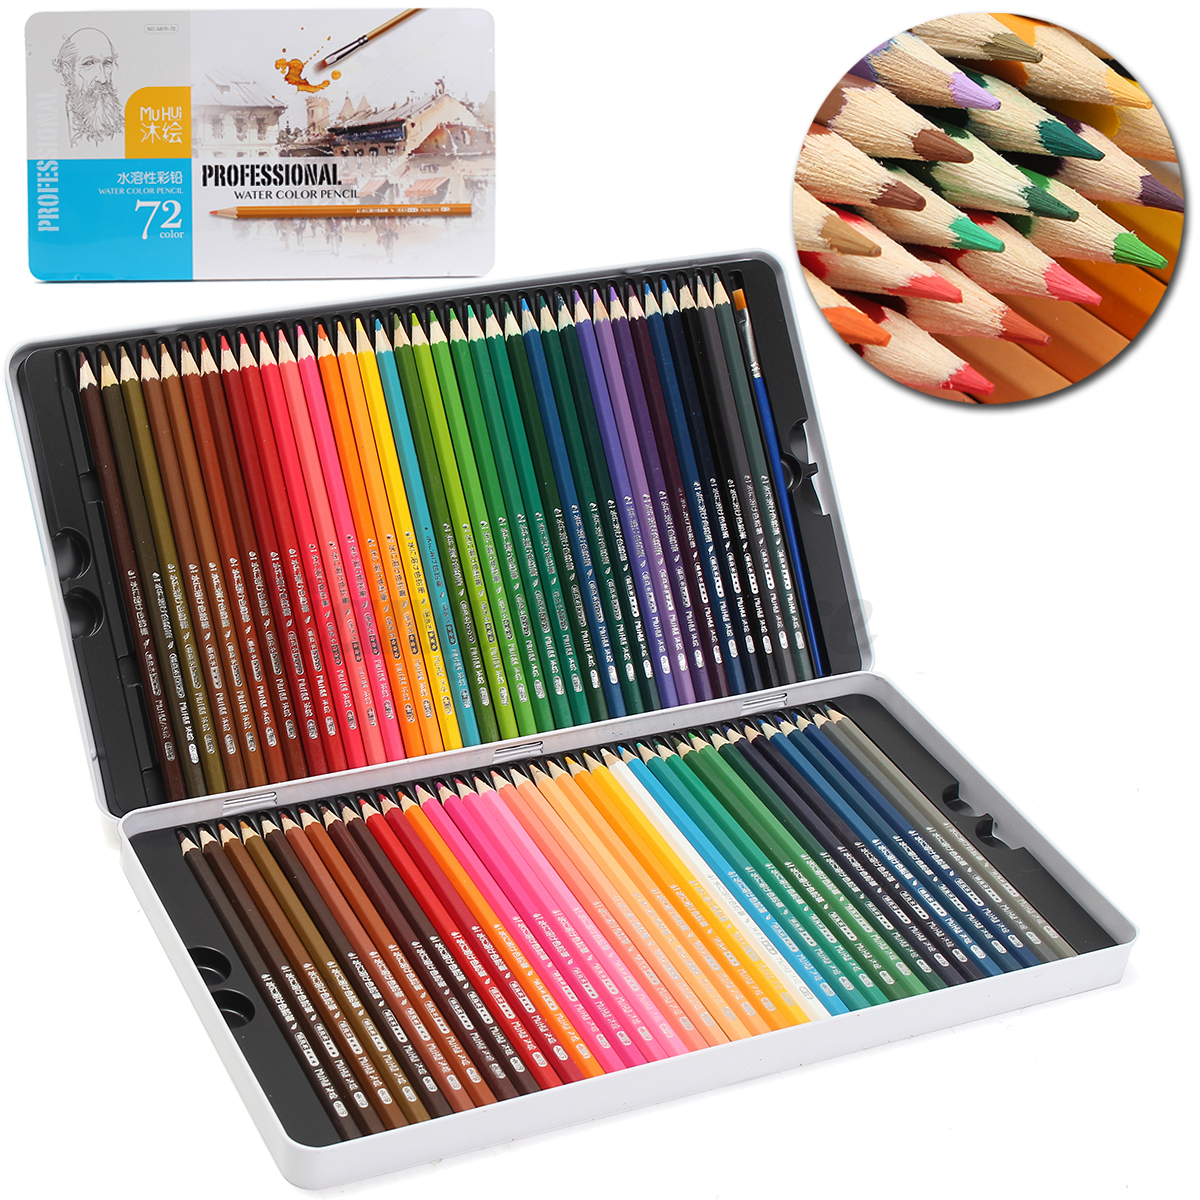 72 Colored Pencils Premium Art Drawing Water Sketching Soft Core Lead Set & Case